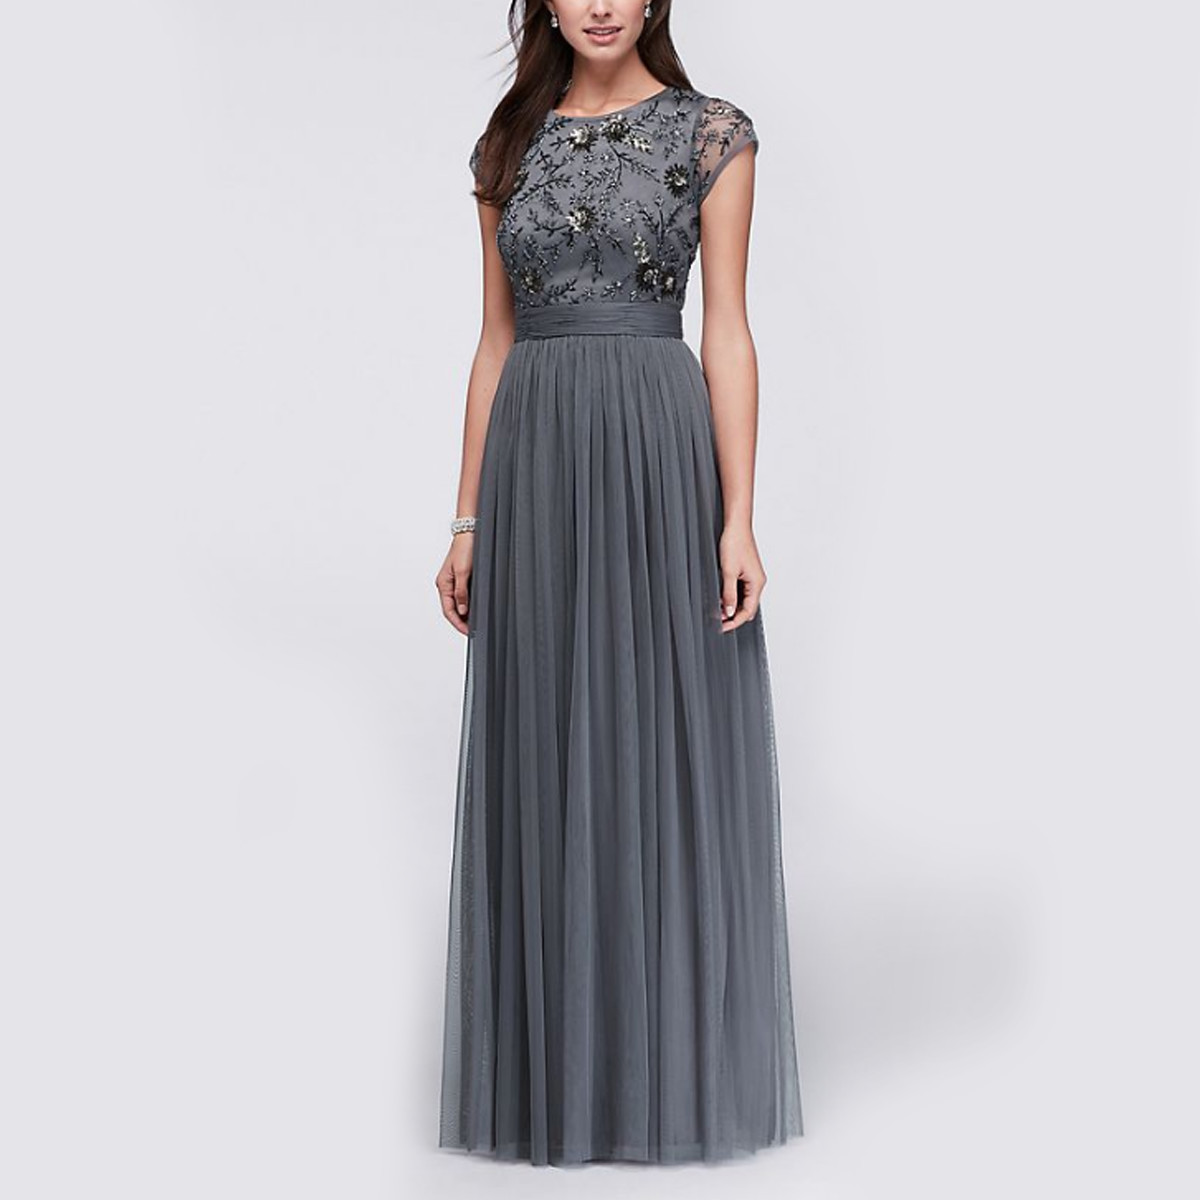 Woman wearing a gray mother of the bride dress photo